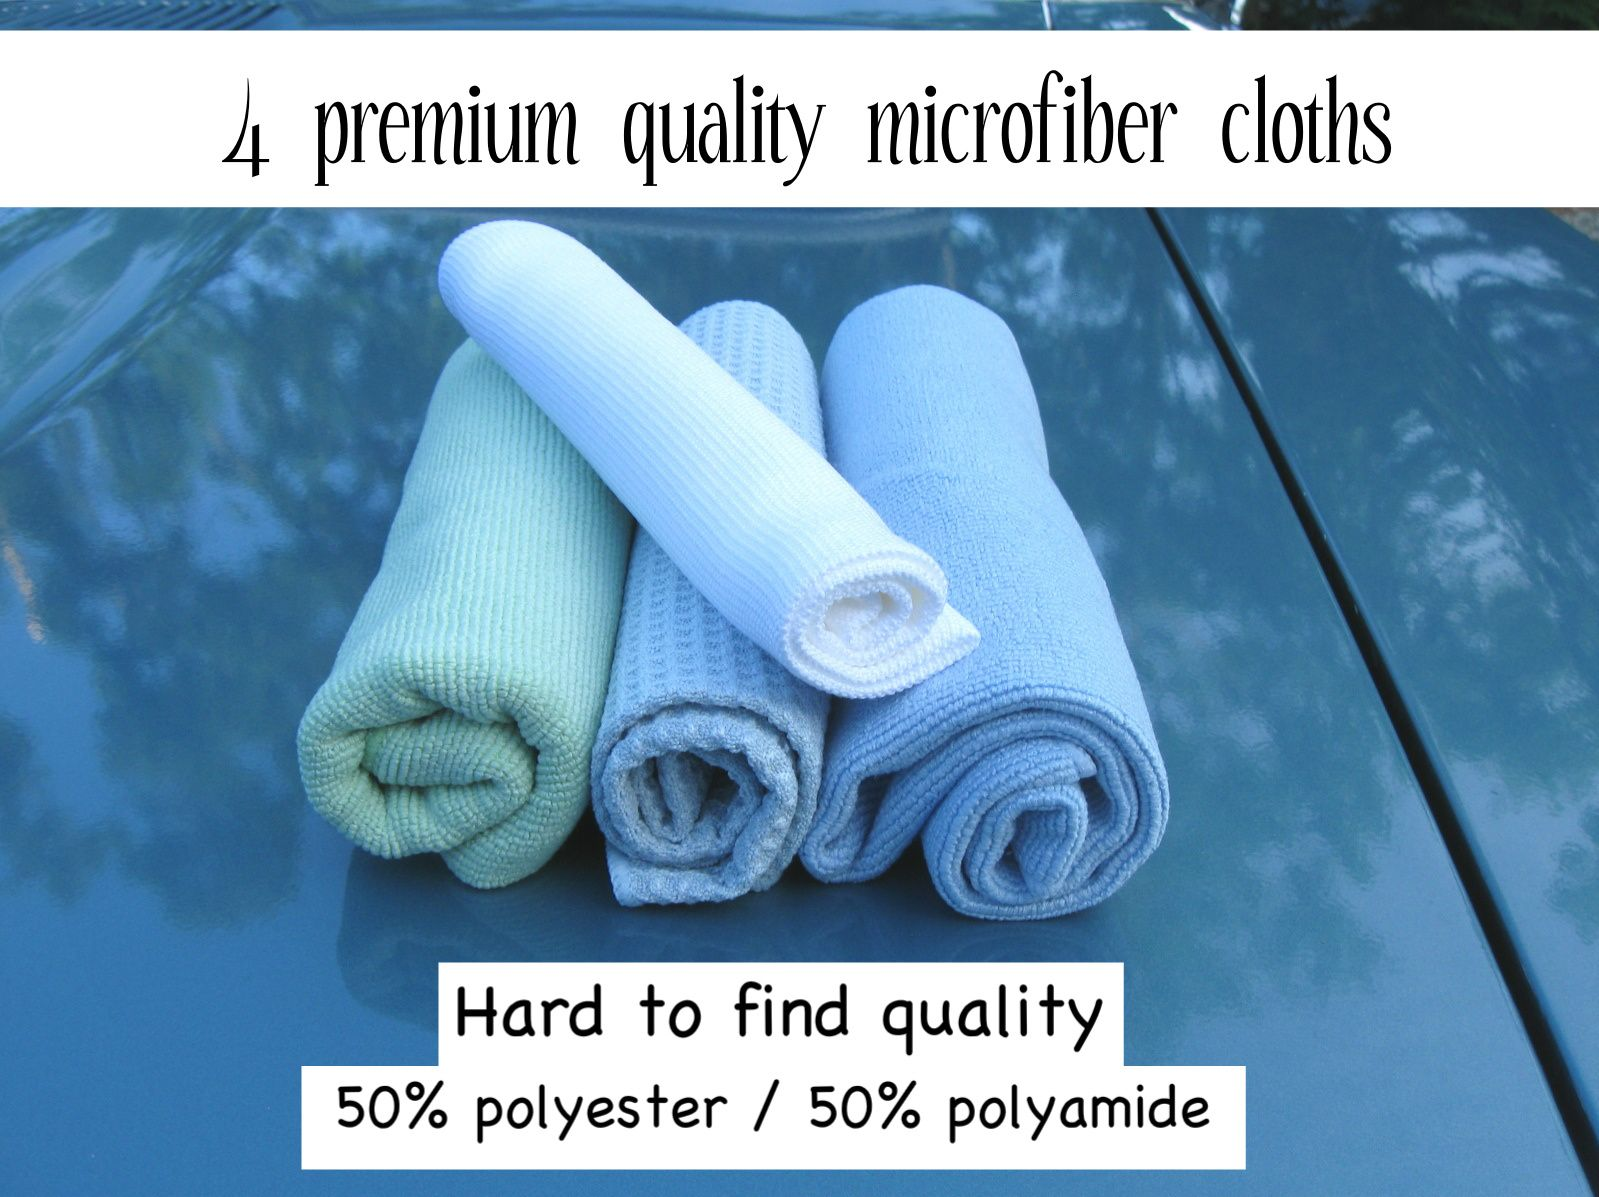 Sale now on Ebay – Premium microfiber cloths!   with quality ~ hard to find ~  50% polyamide / 50% polyester. http://www.ebay.ca/sch/hummbirdsa/m.html?_nkw=&_armrs=1&_ipg=&_from=   shine kitchen appliances bathrooms